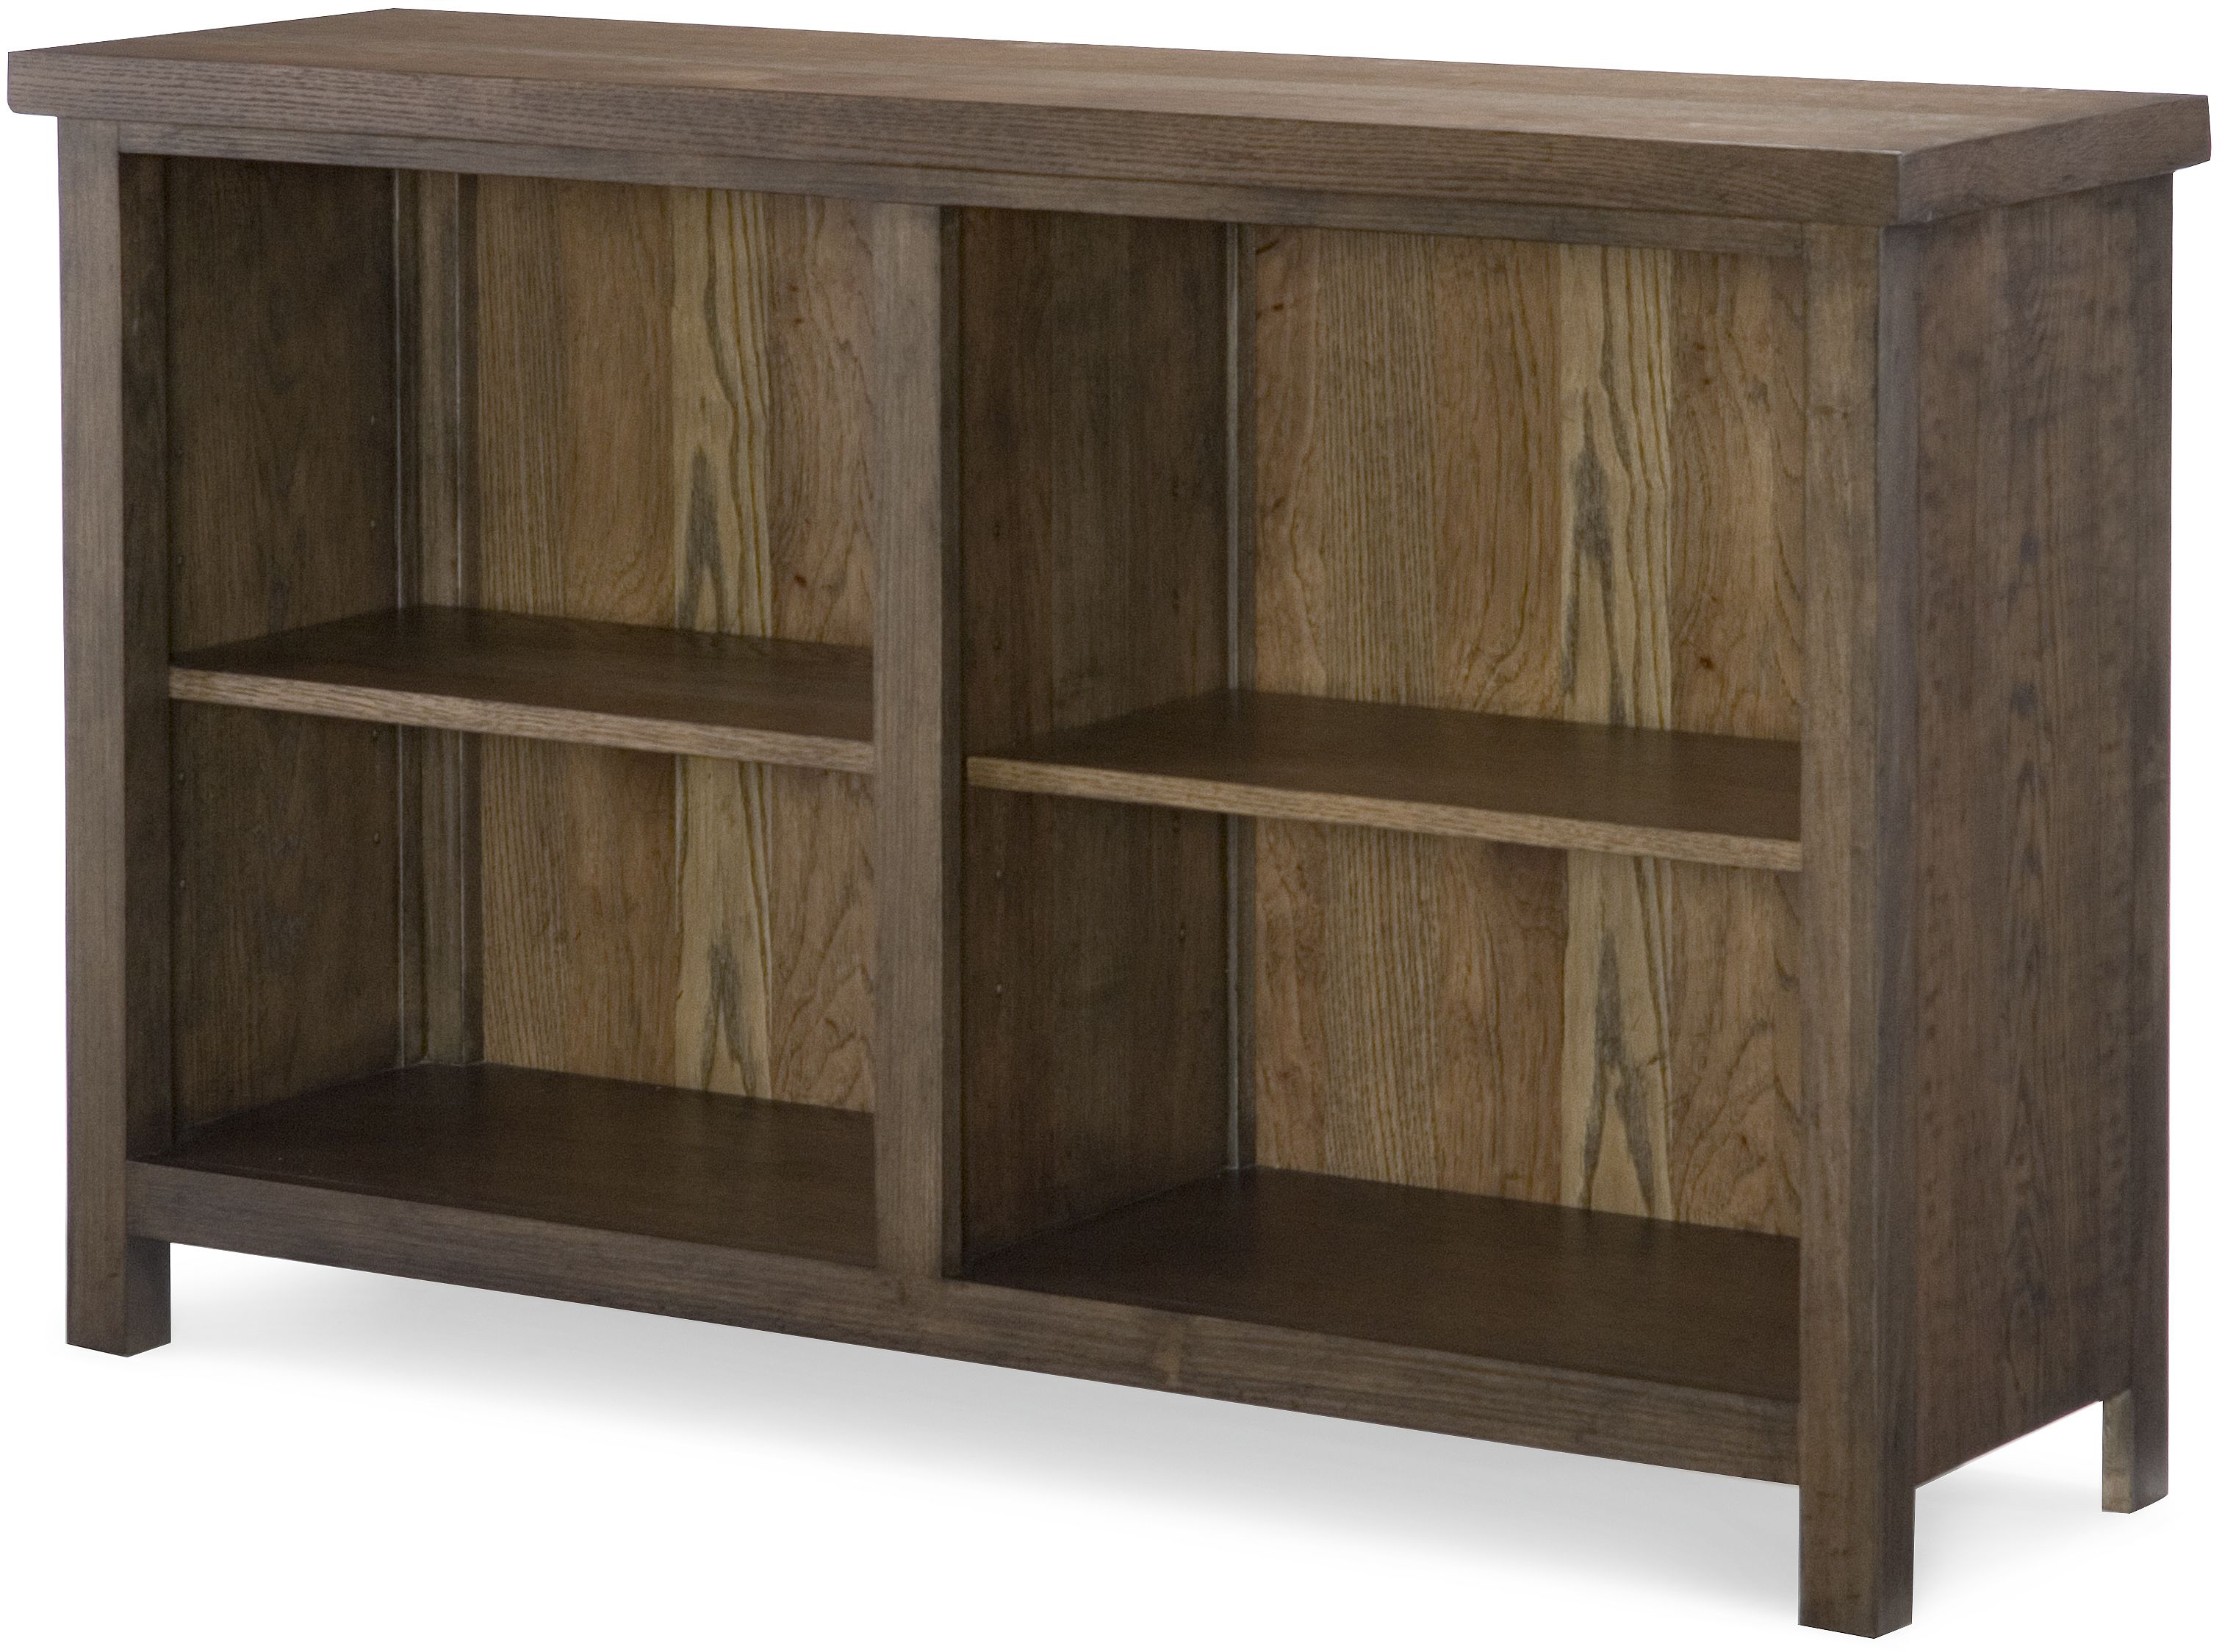 Legacy Classic Kids Fulton County Bookcase  - Item Number: 5900-7200